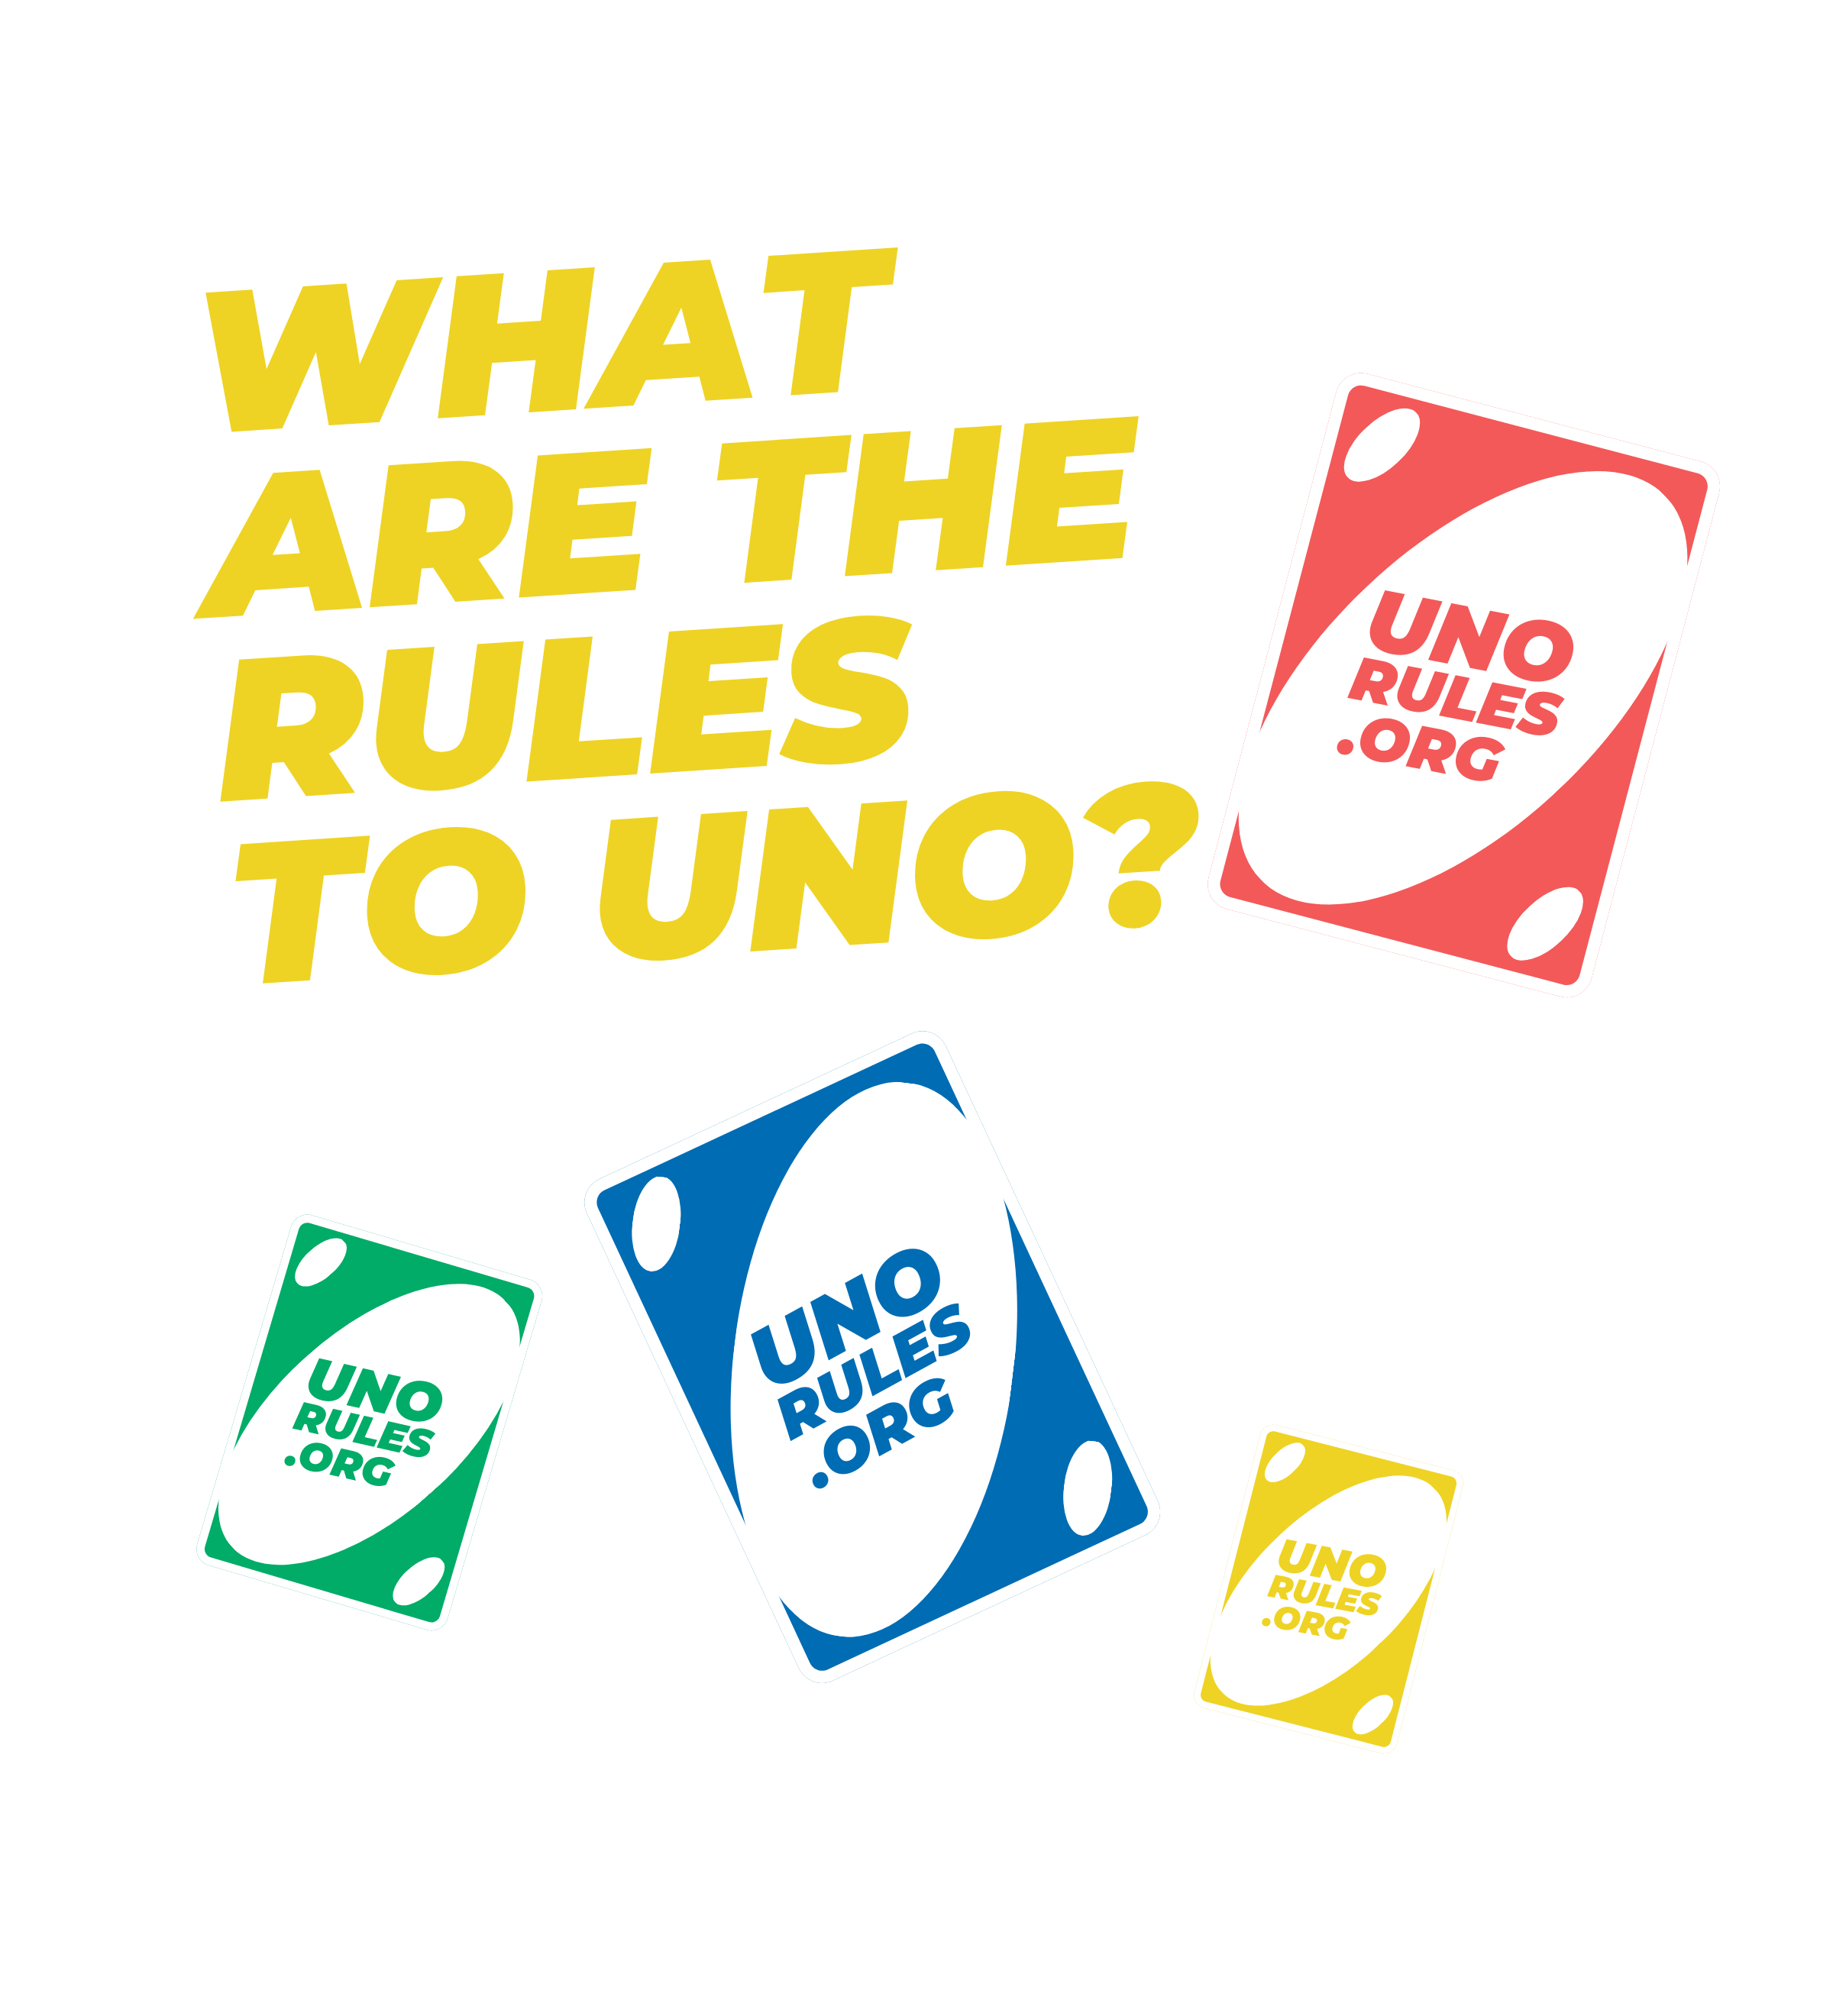 Uno Rules - What are the rules to uno front